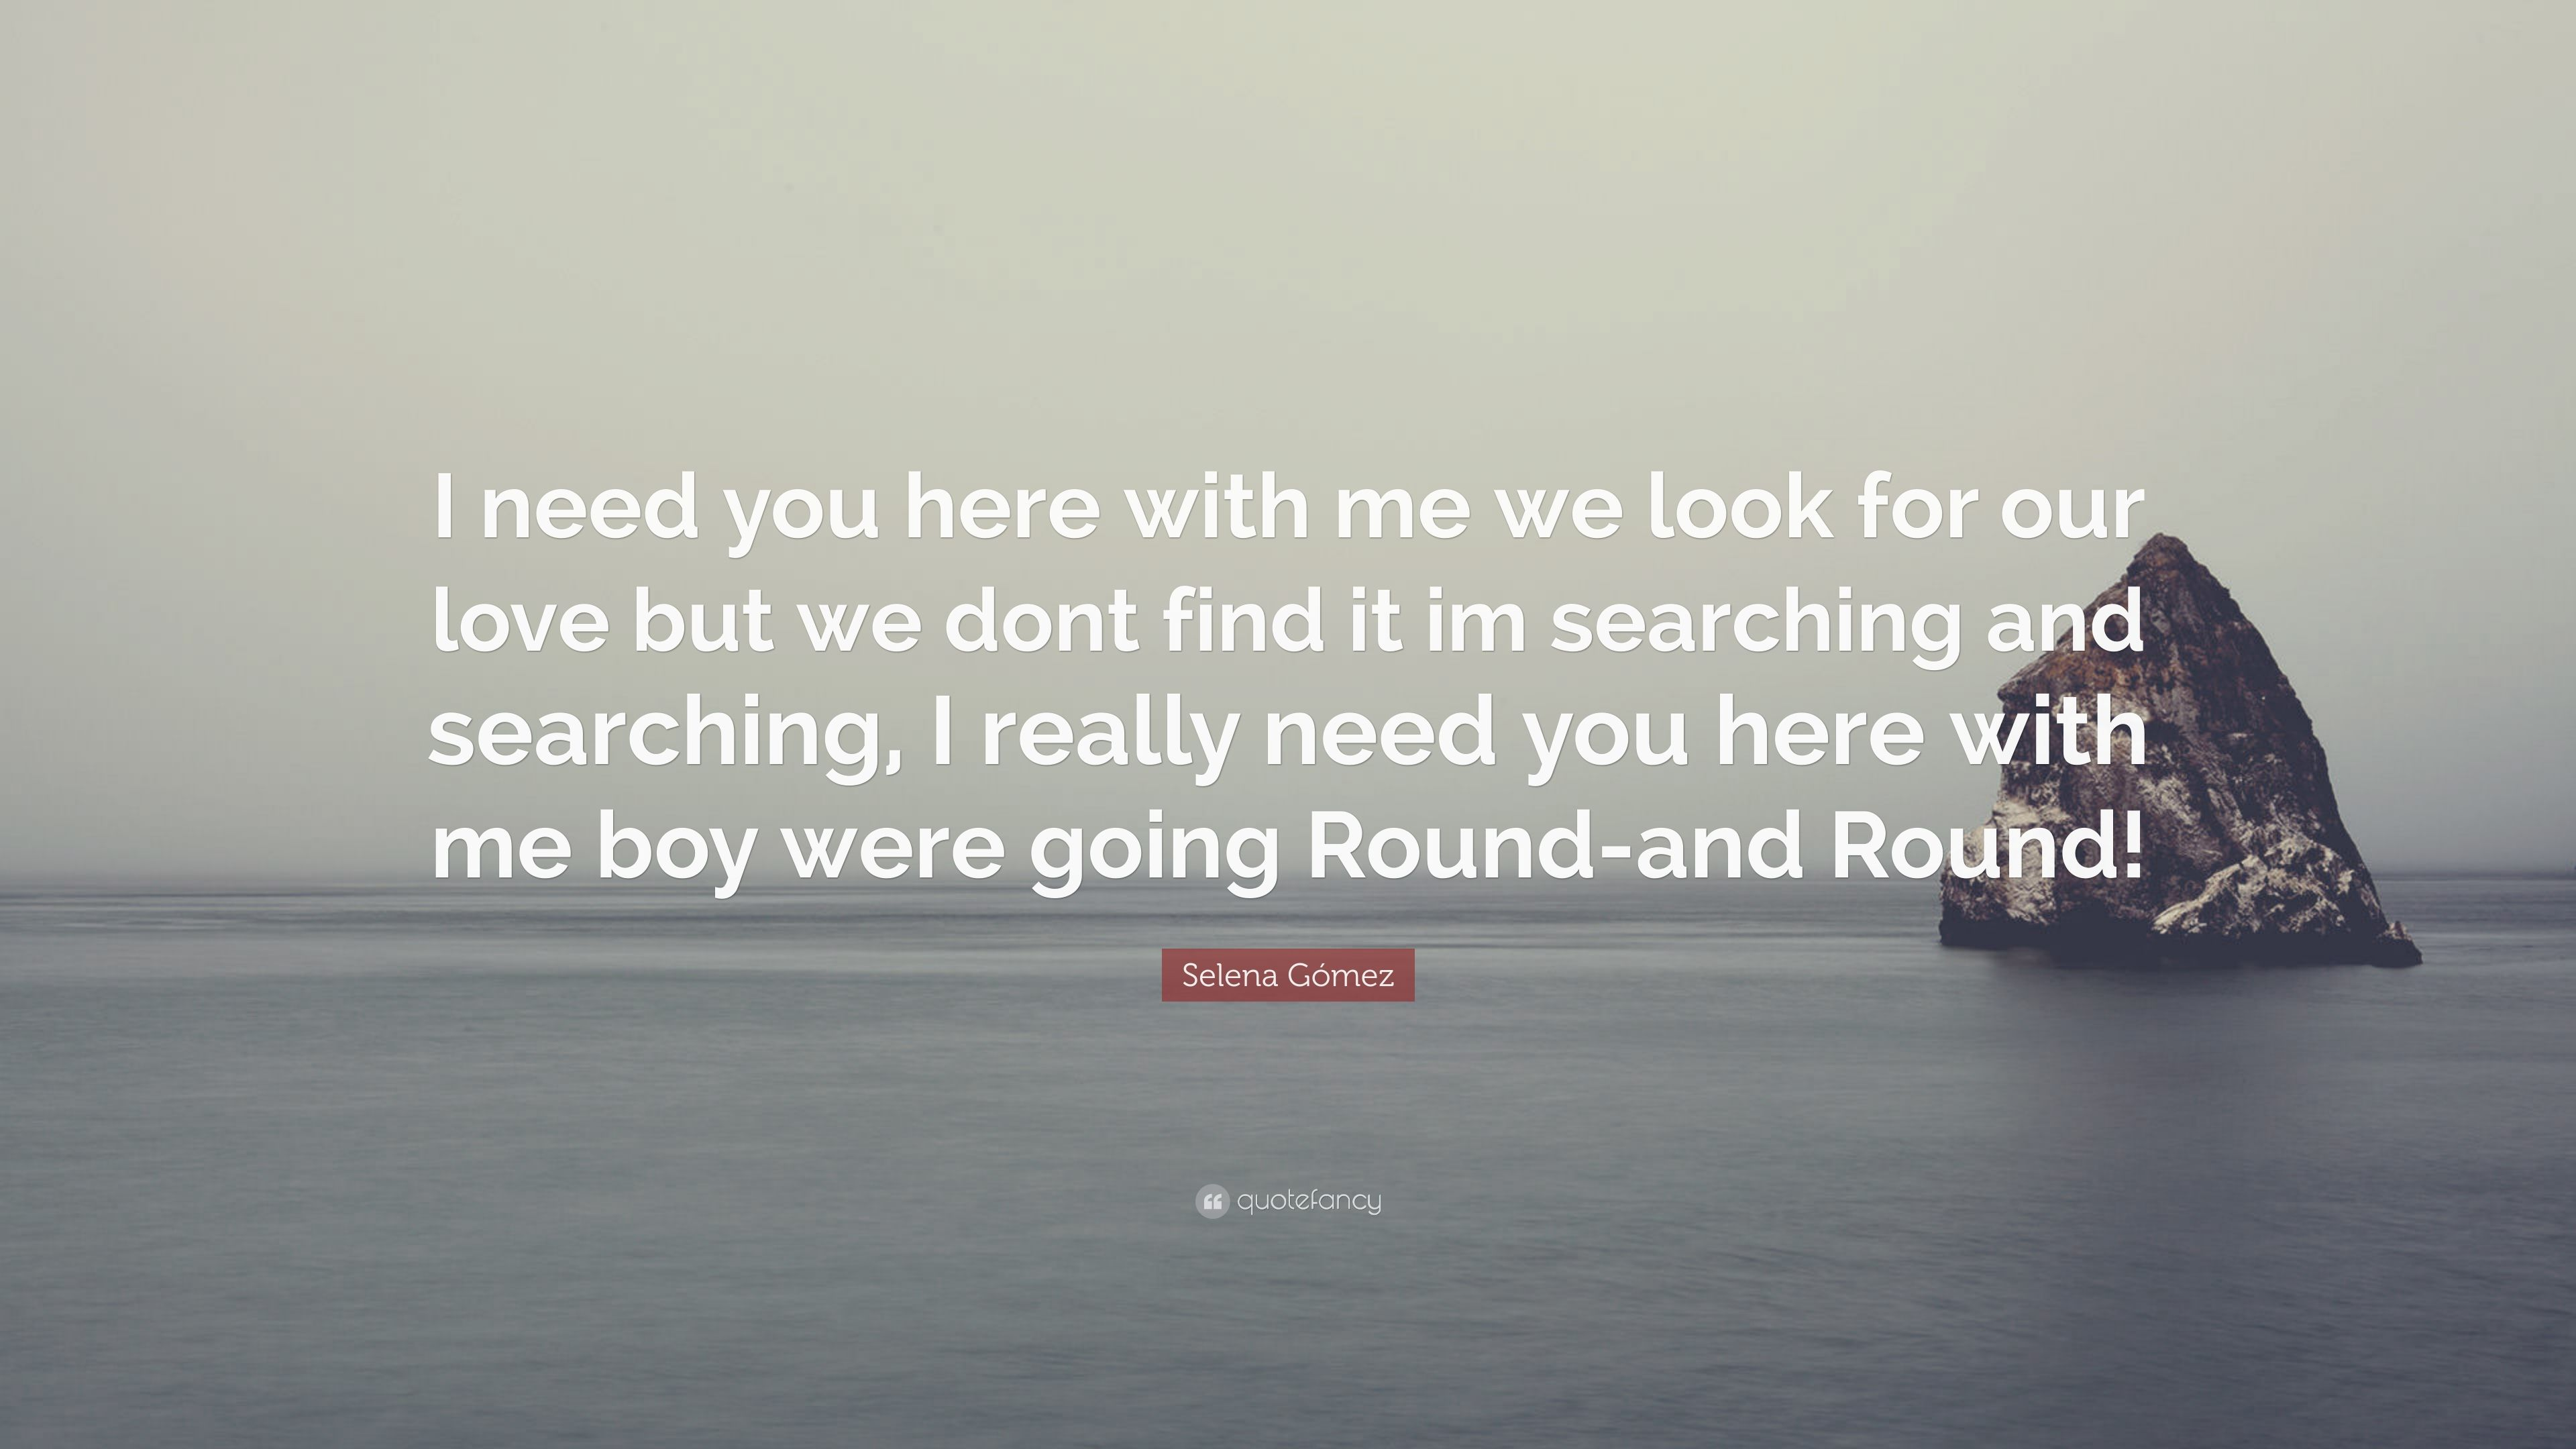 need you here with me